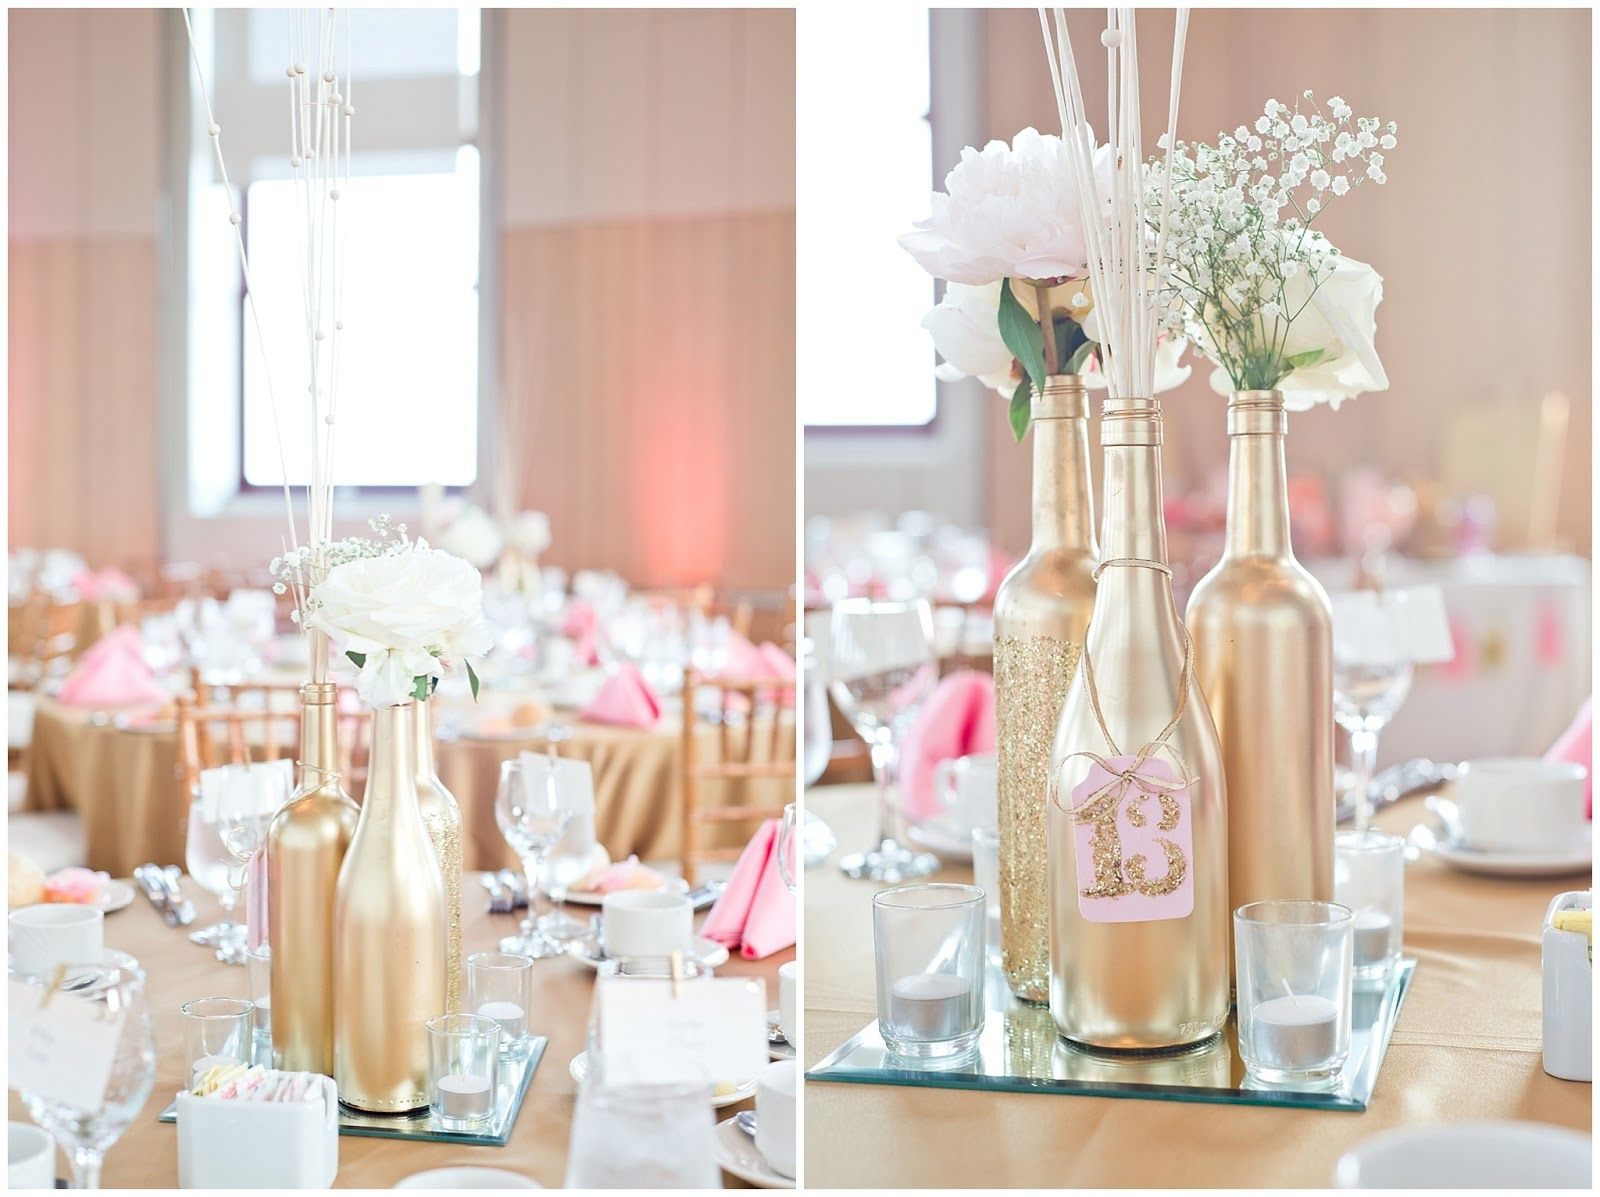 Gold painted wine bottle diy wedding centerpieces with white roses and pink  accents